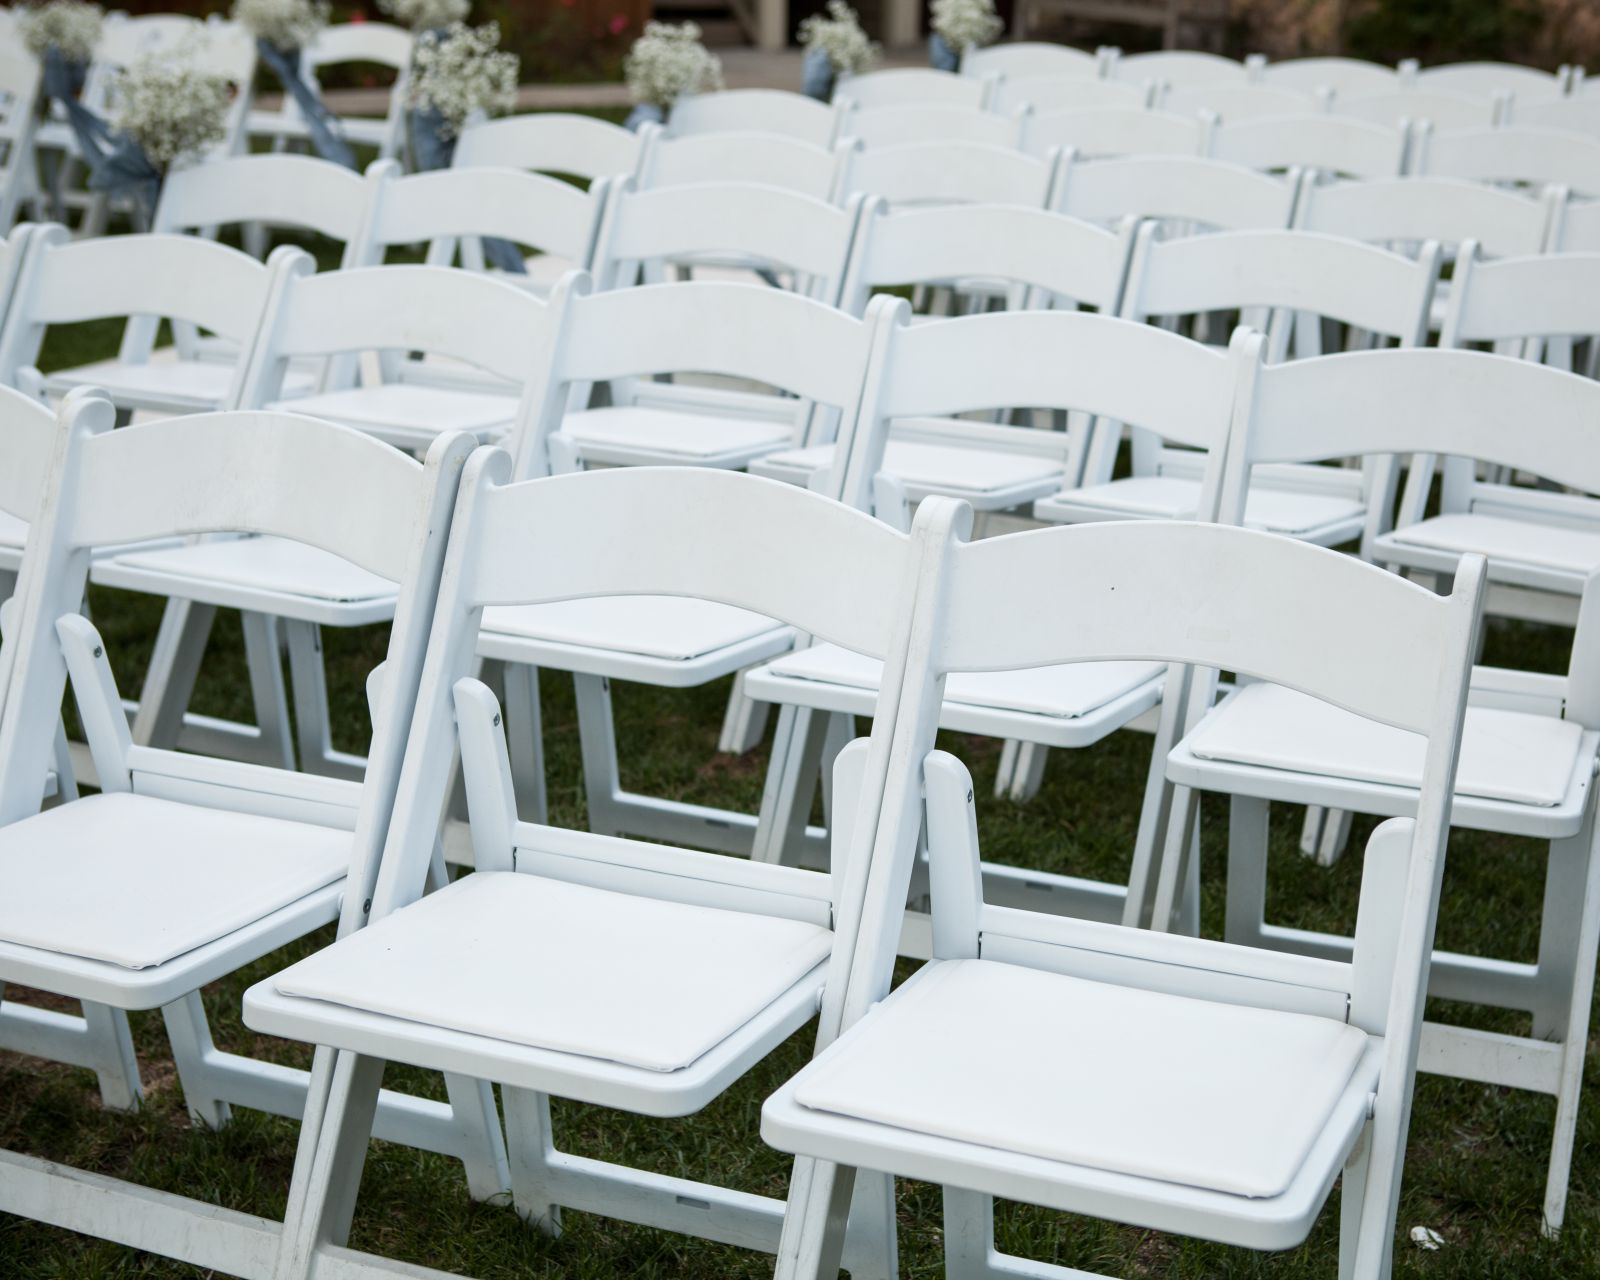 Furniture hire tips that work for all kinds of events